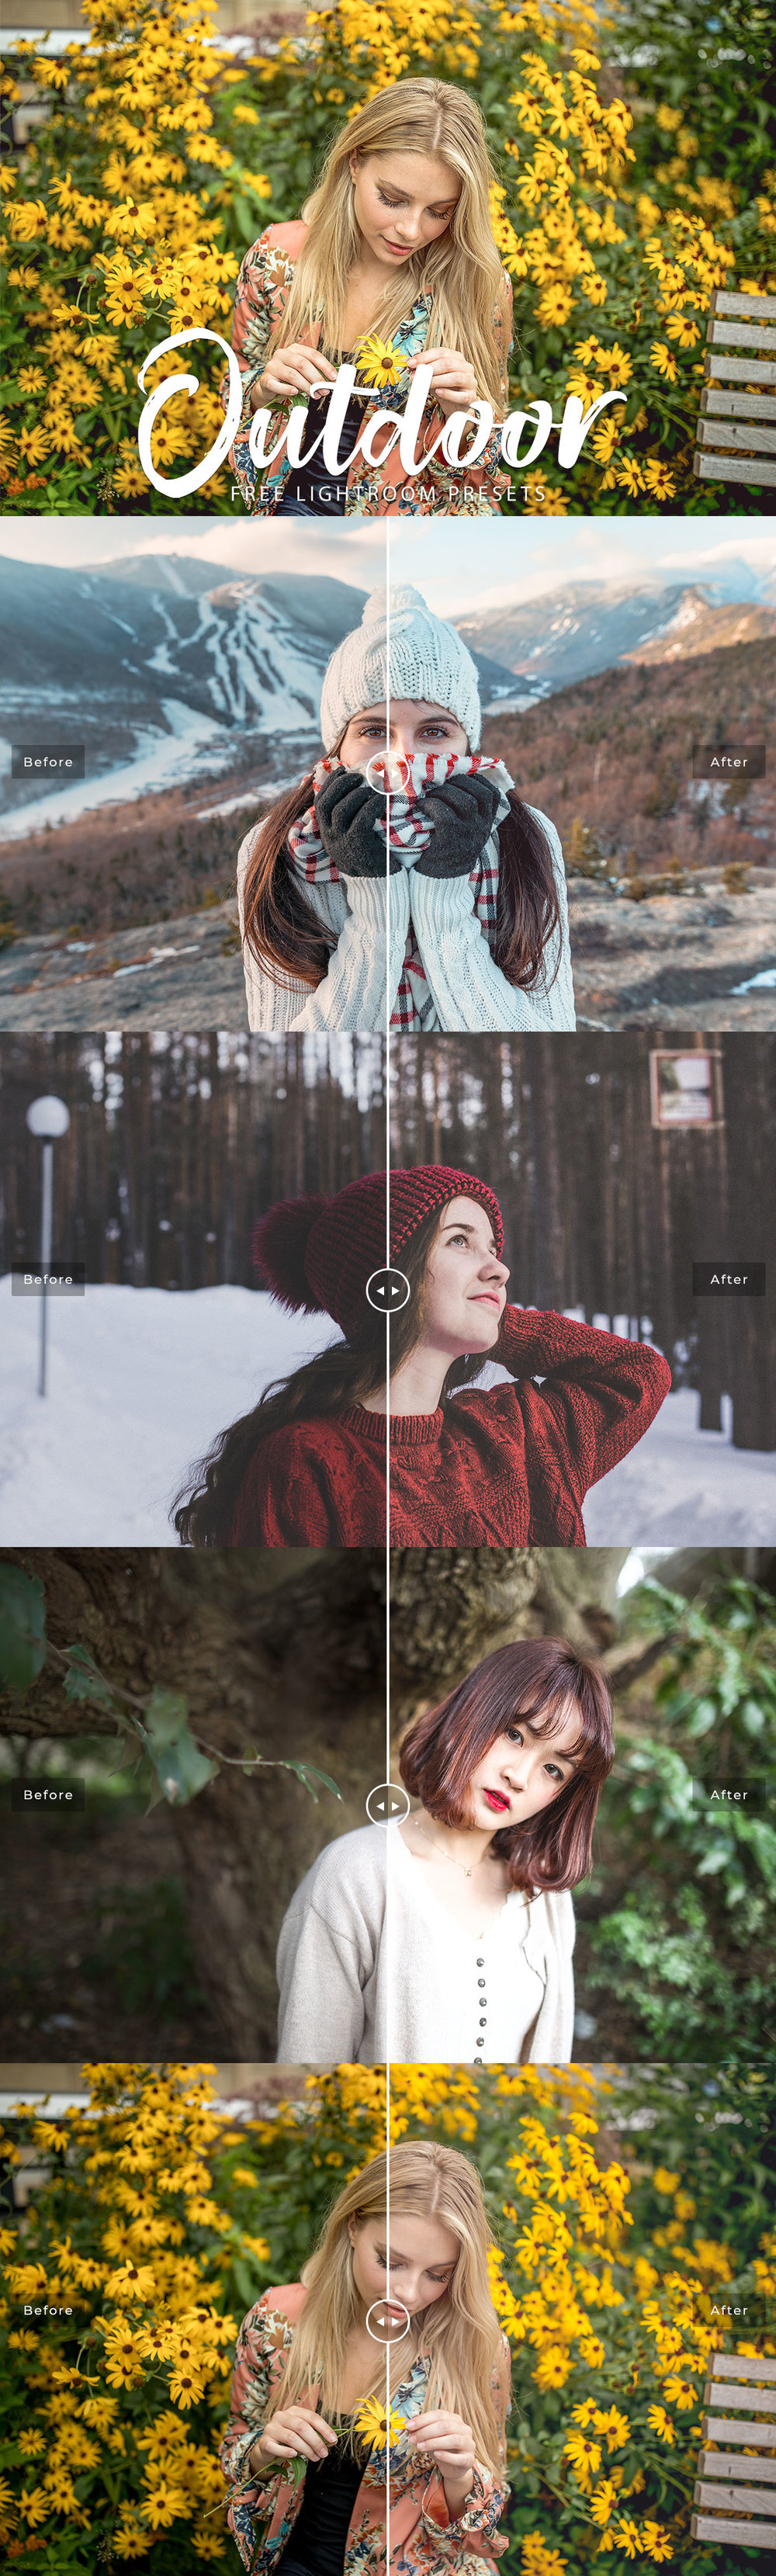 Free #Outdoor #Lightroom #Presets is a beautiful collection specially handcrafted to enhance your outdoor photography.